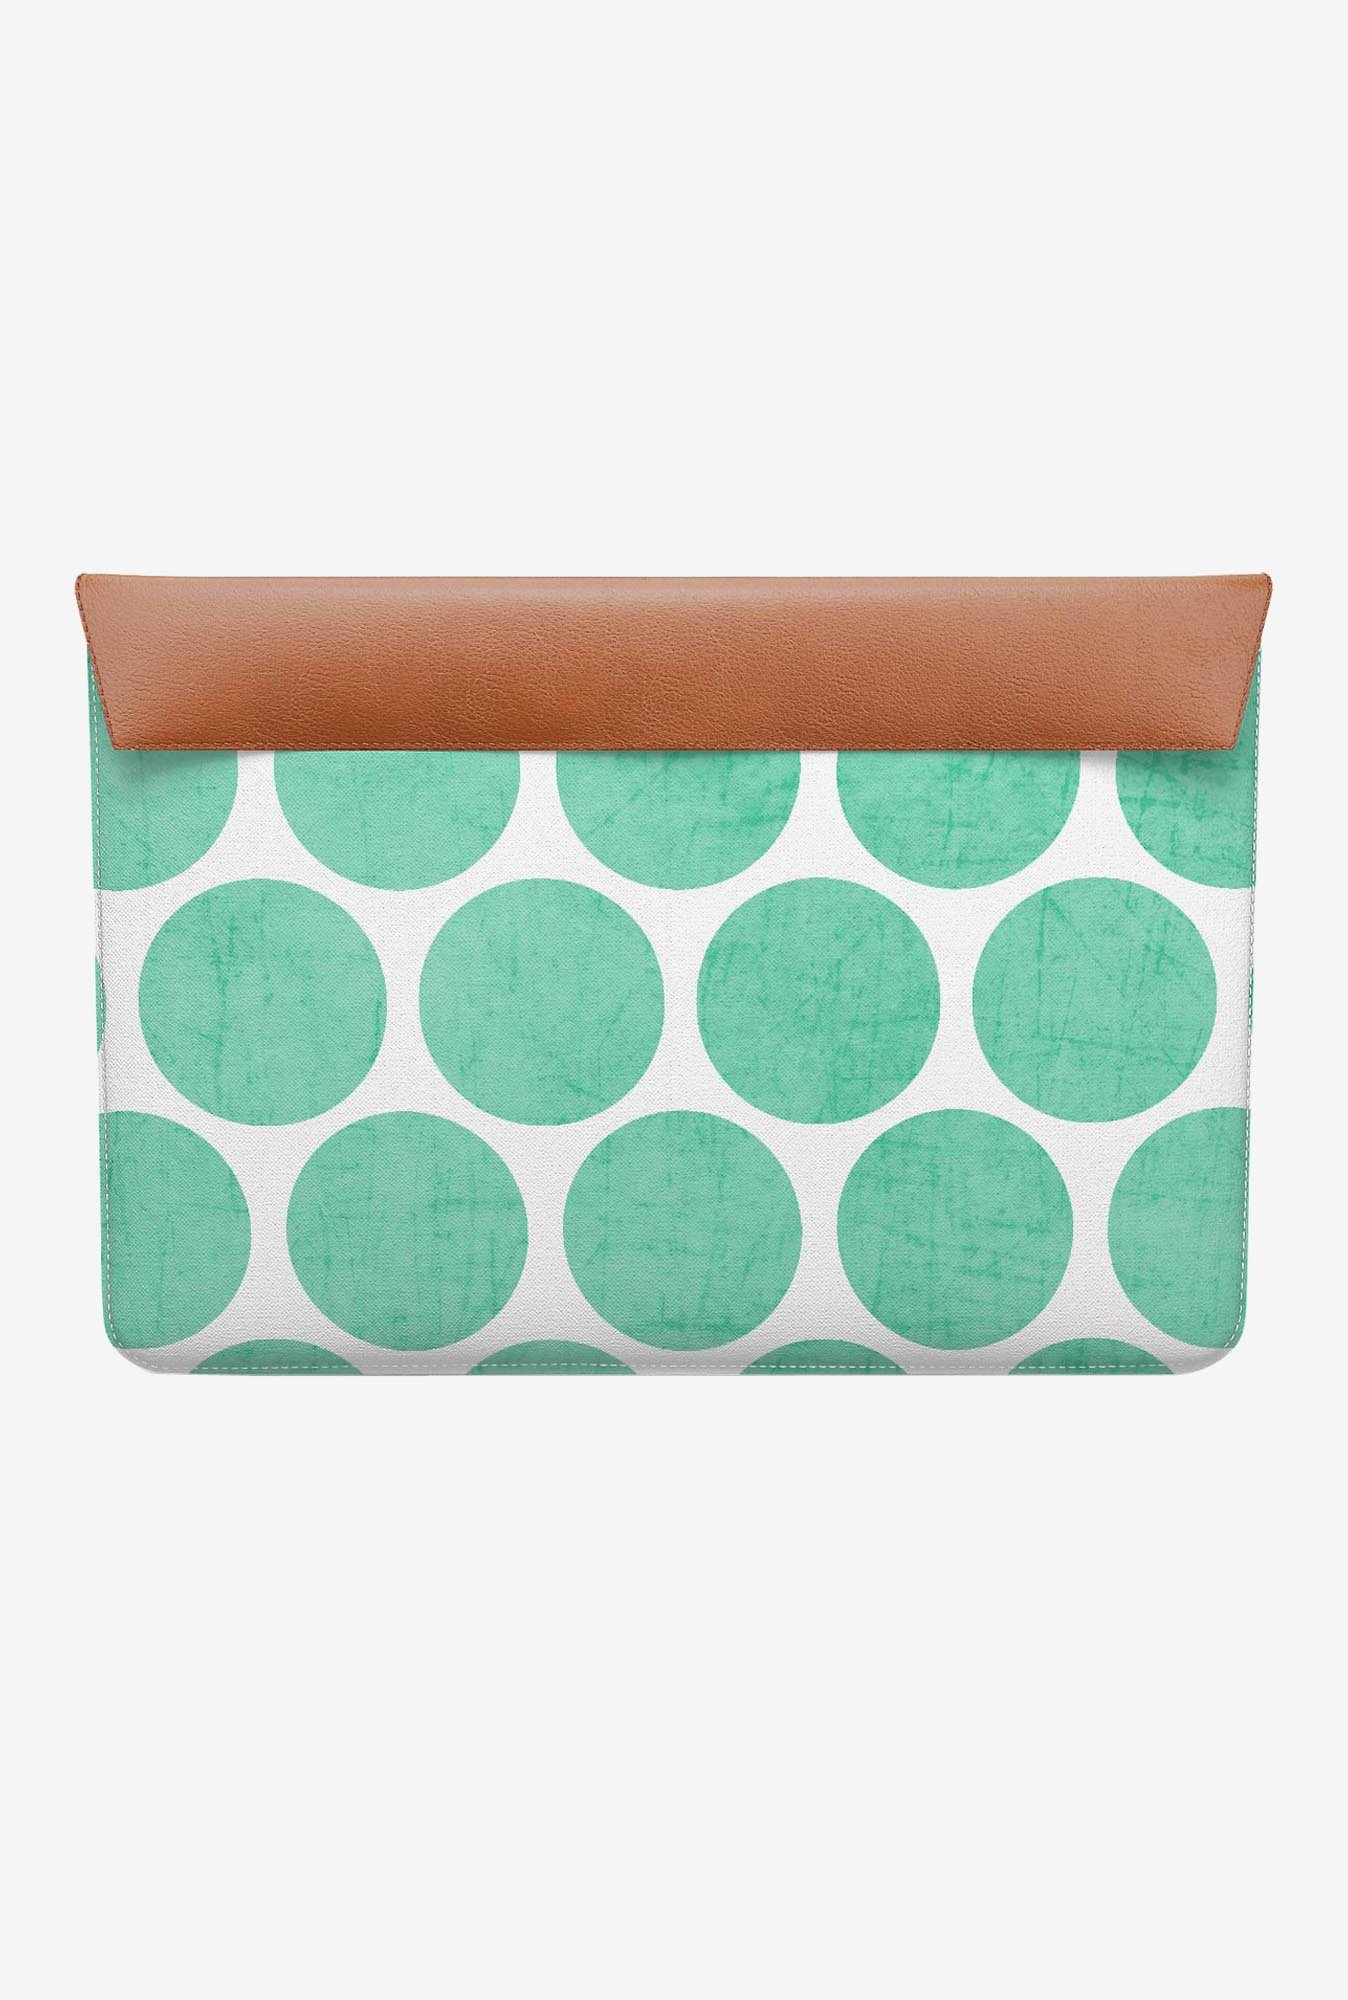 DailyObjects Mint Polka Dots MacBook Air 11 Envelope Sleeve